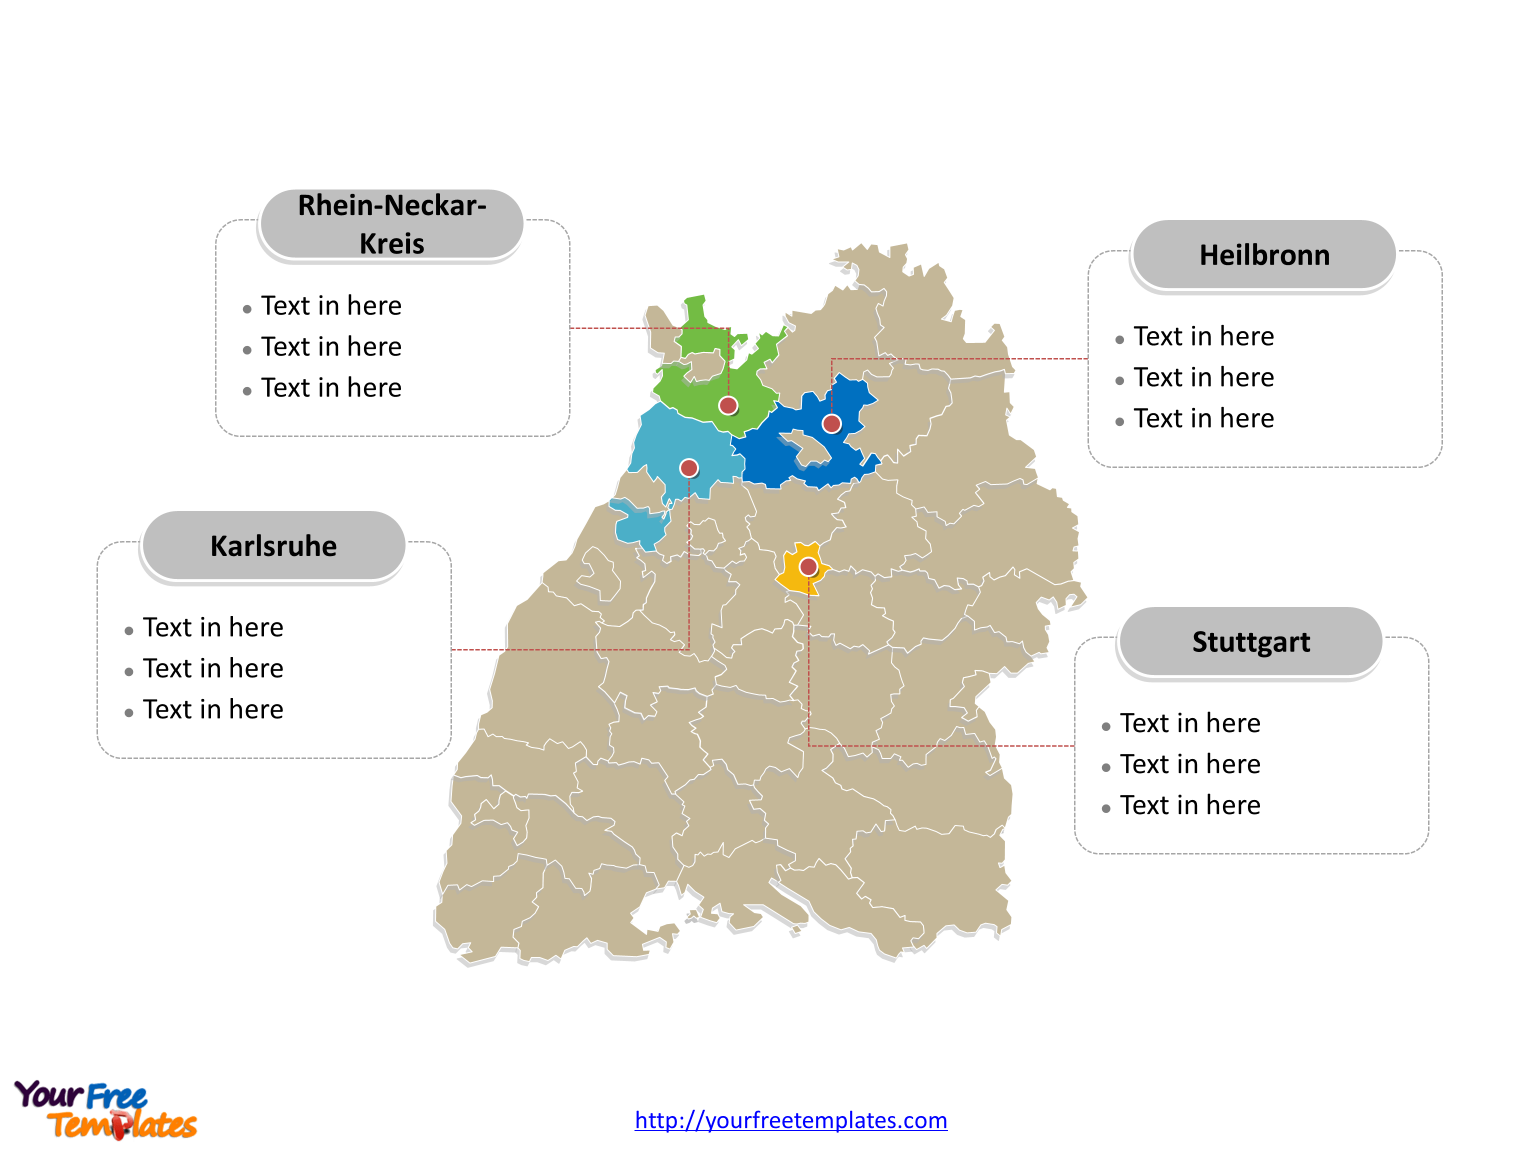 Baden-Württemberg map labeled with major political districts